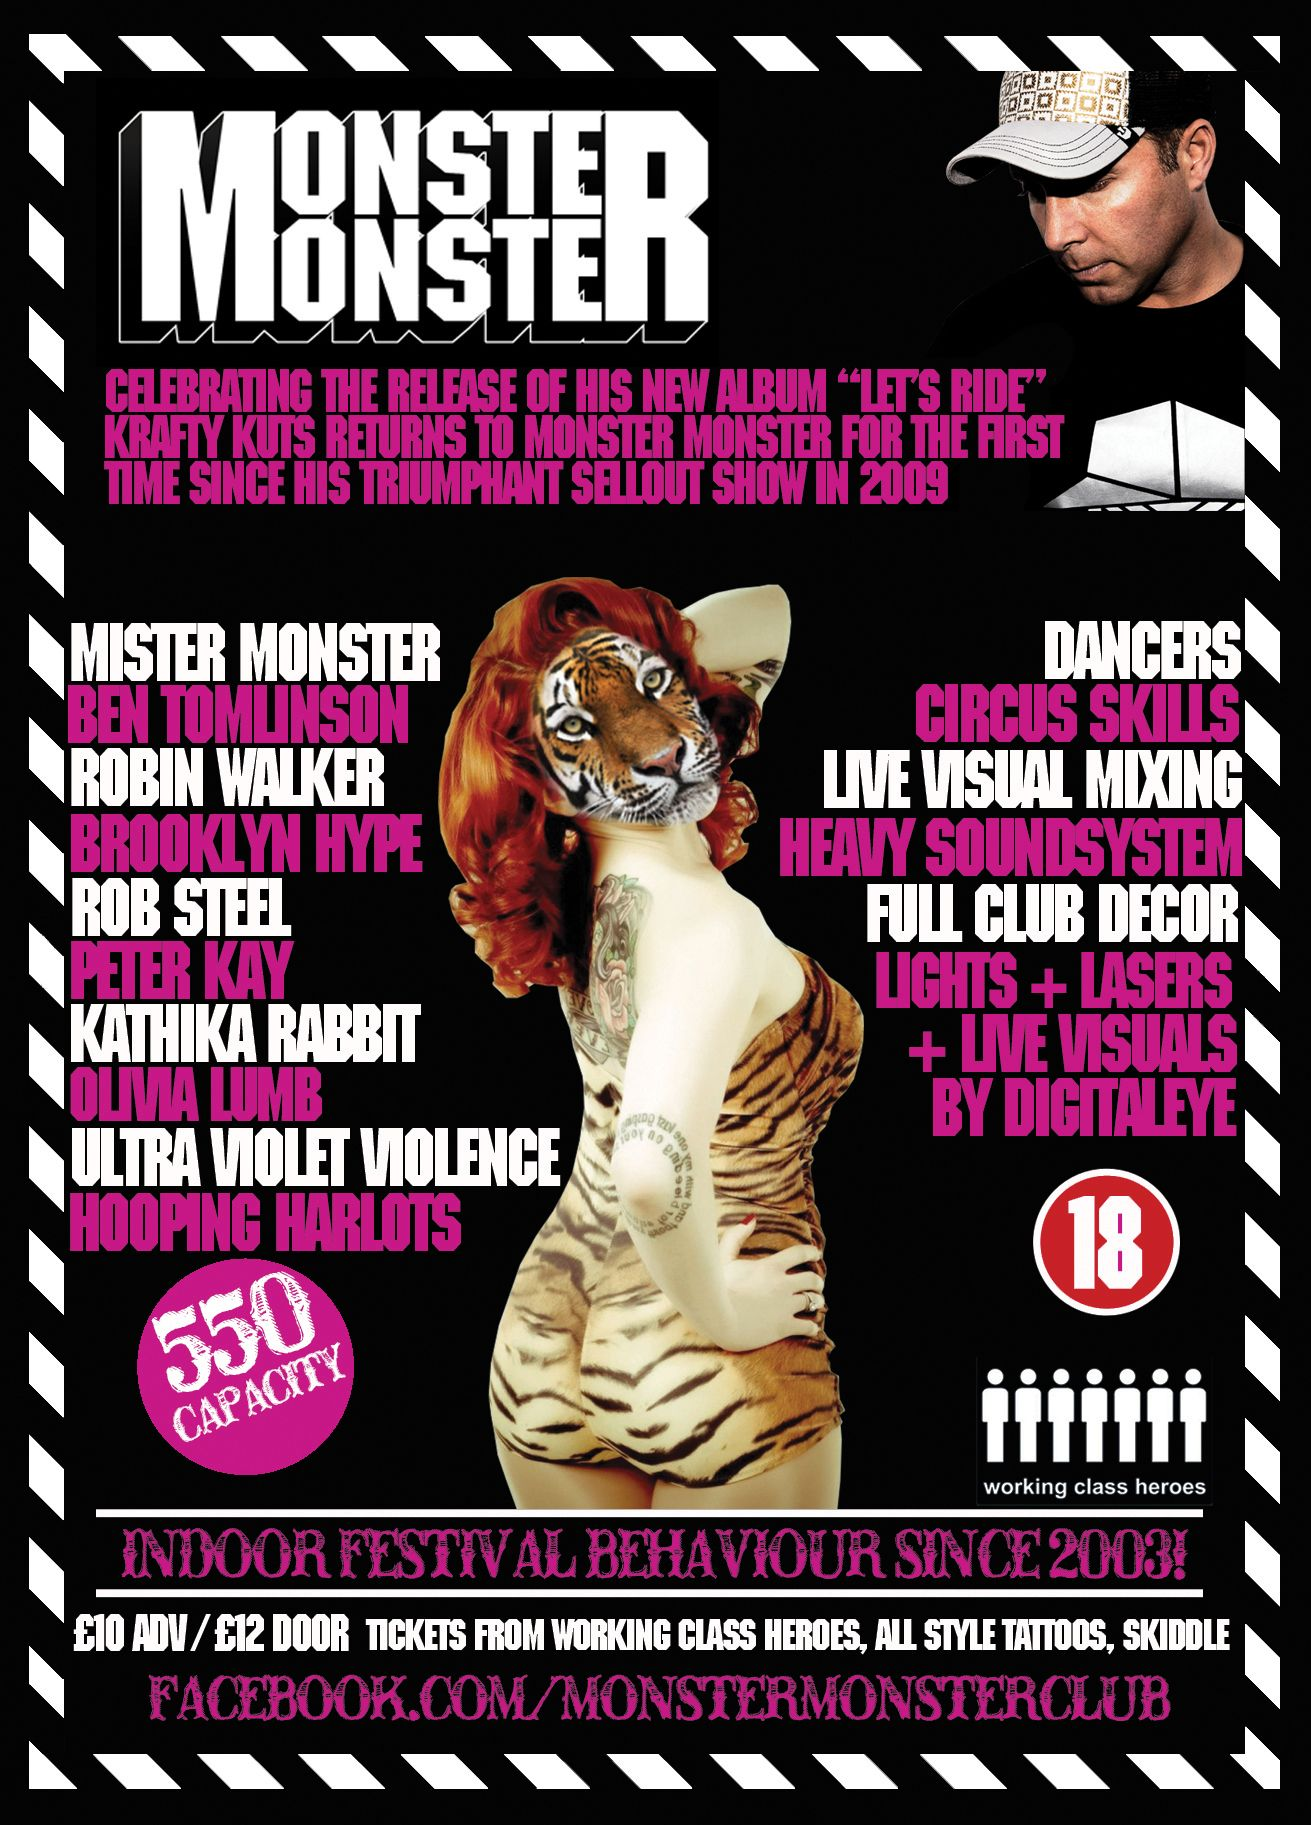 friday night live comedy flyer promotional flyer design monster monster flyer club night barrow example of a bad flyer there s too much going